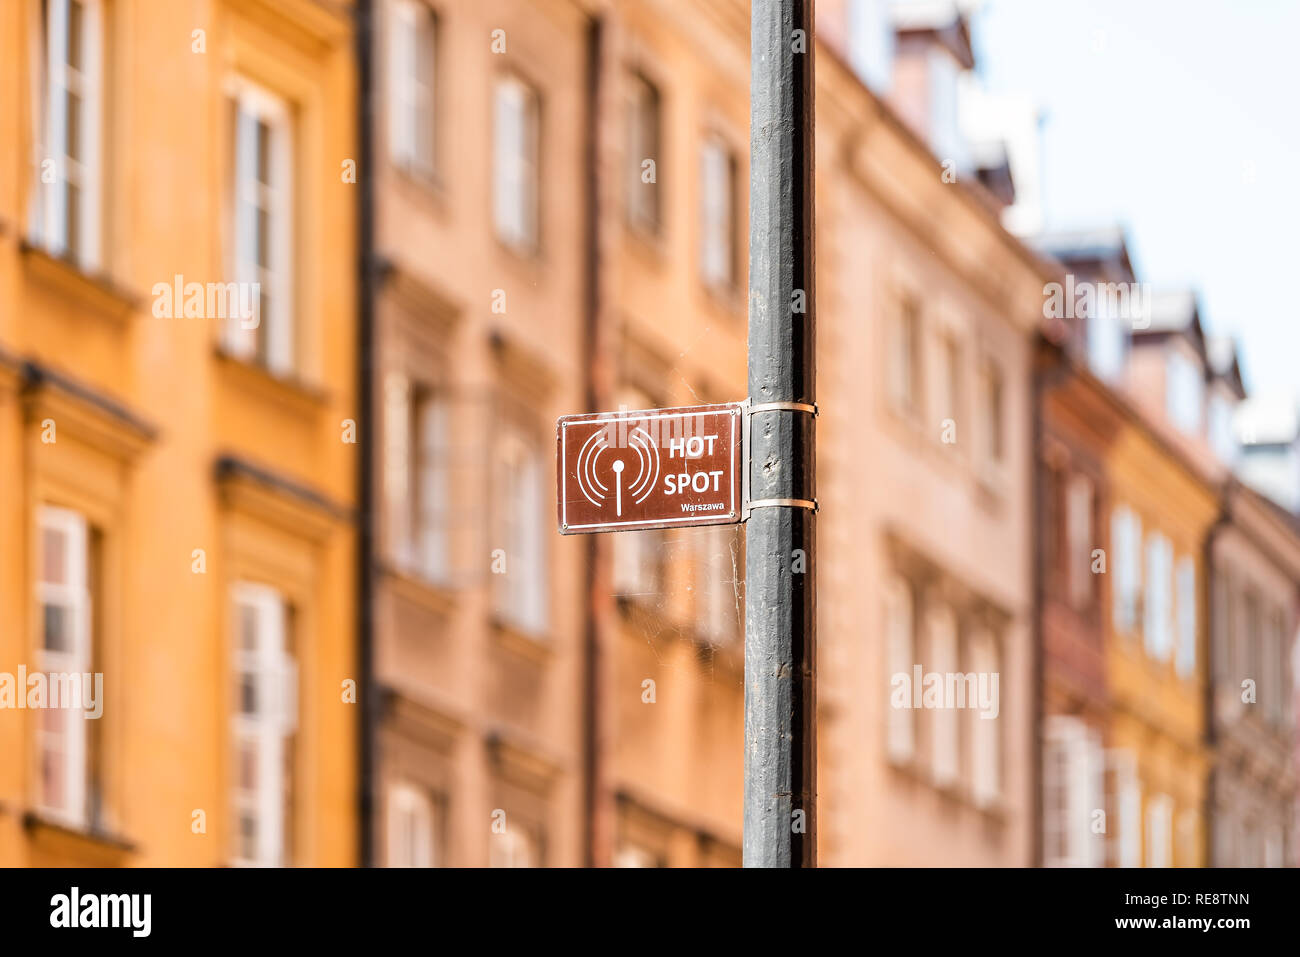 Warsaw, Poland Famous old town capital city architecture during sunny summer day cityscape background and closeup of sign for Warszawa Wifi Hot Spot o - Stock Image